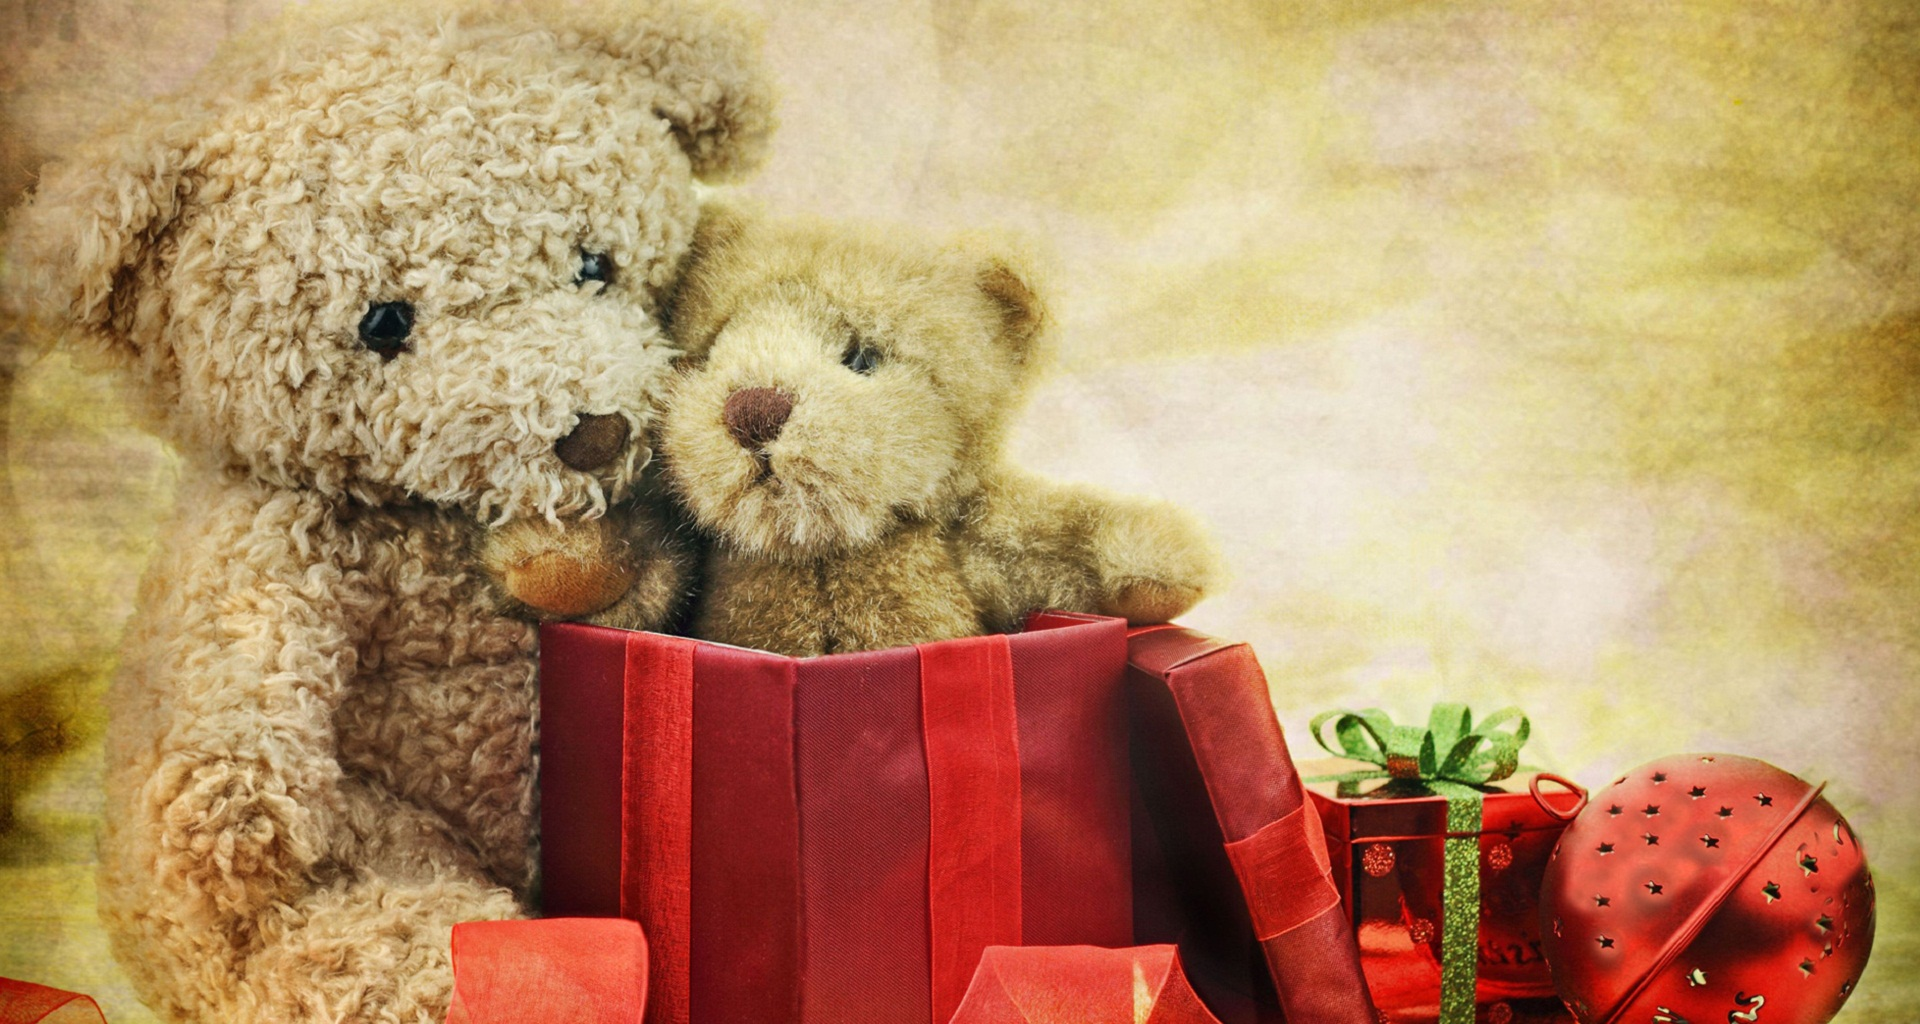 teddy bear wallpaper for desktop free download